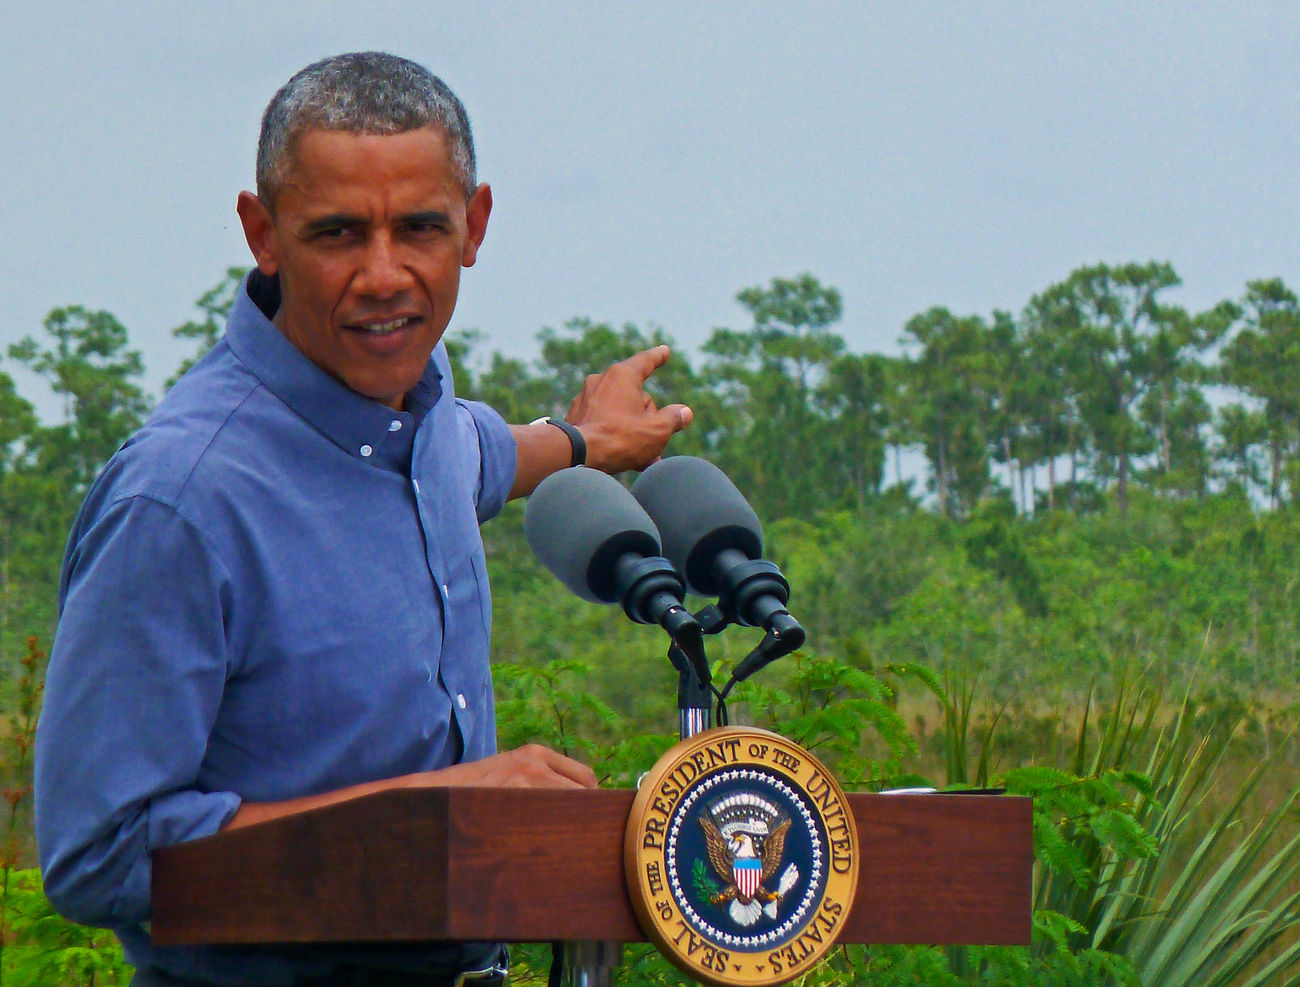 President Barack Obama speaks in Everglades National Park Adult Agriculture Button Down Shirt Day Everglades  Everglades National Park Florida Everglades Happiness Obama One Man Only One Person Outdoors People Podium Politics Politics And Government Portrait President Real People Smiling Tree Waist Up